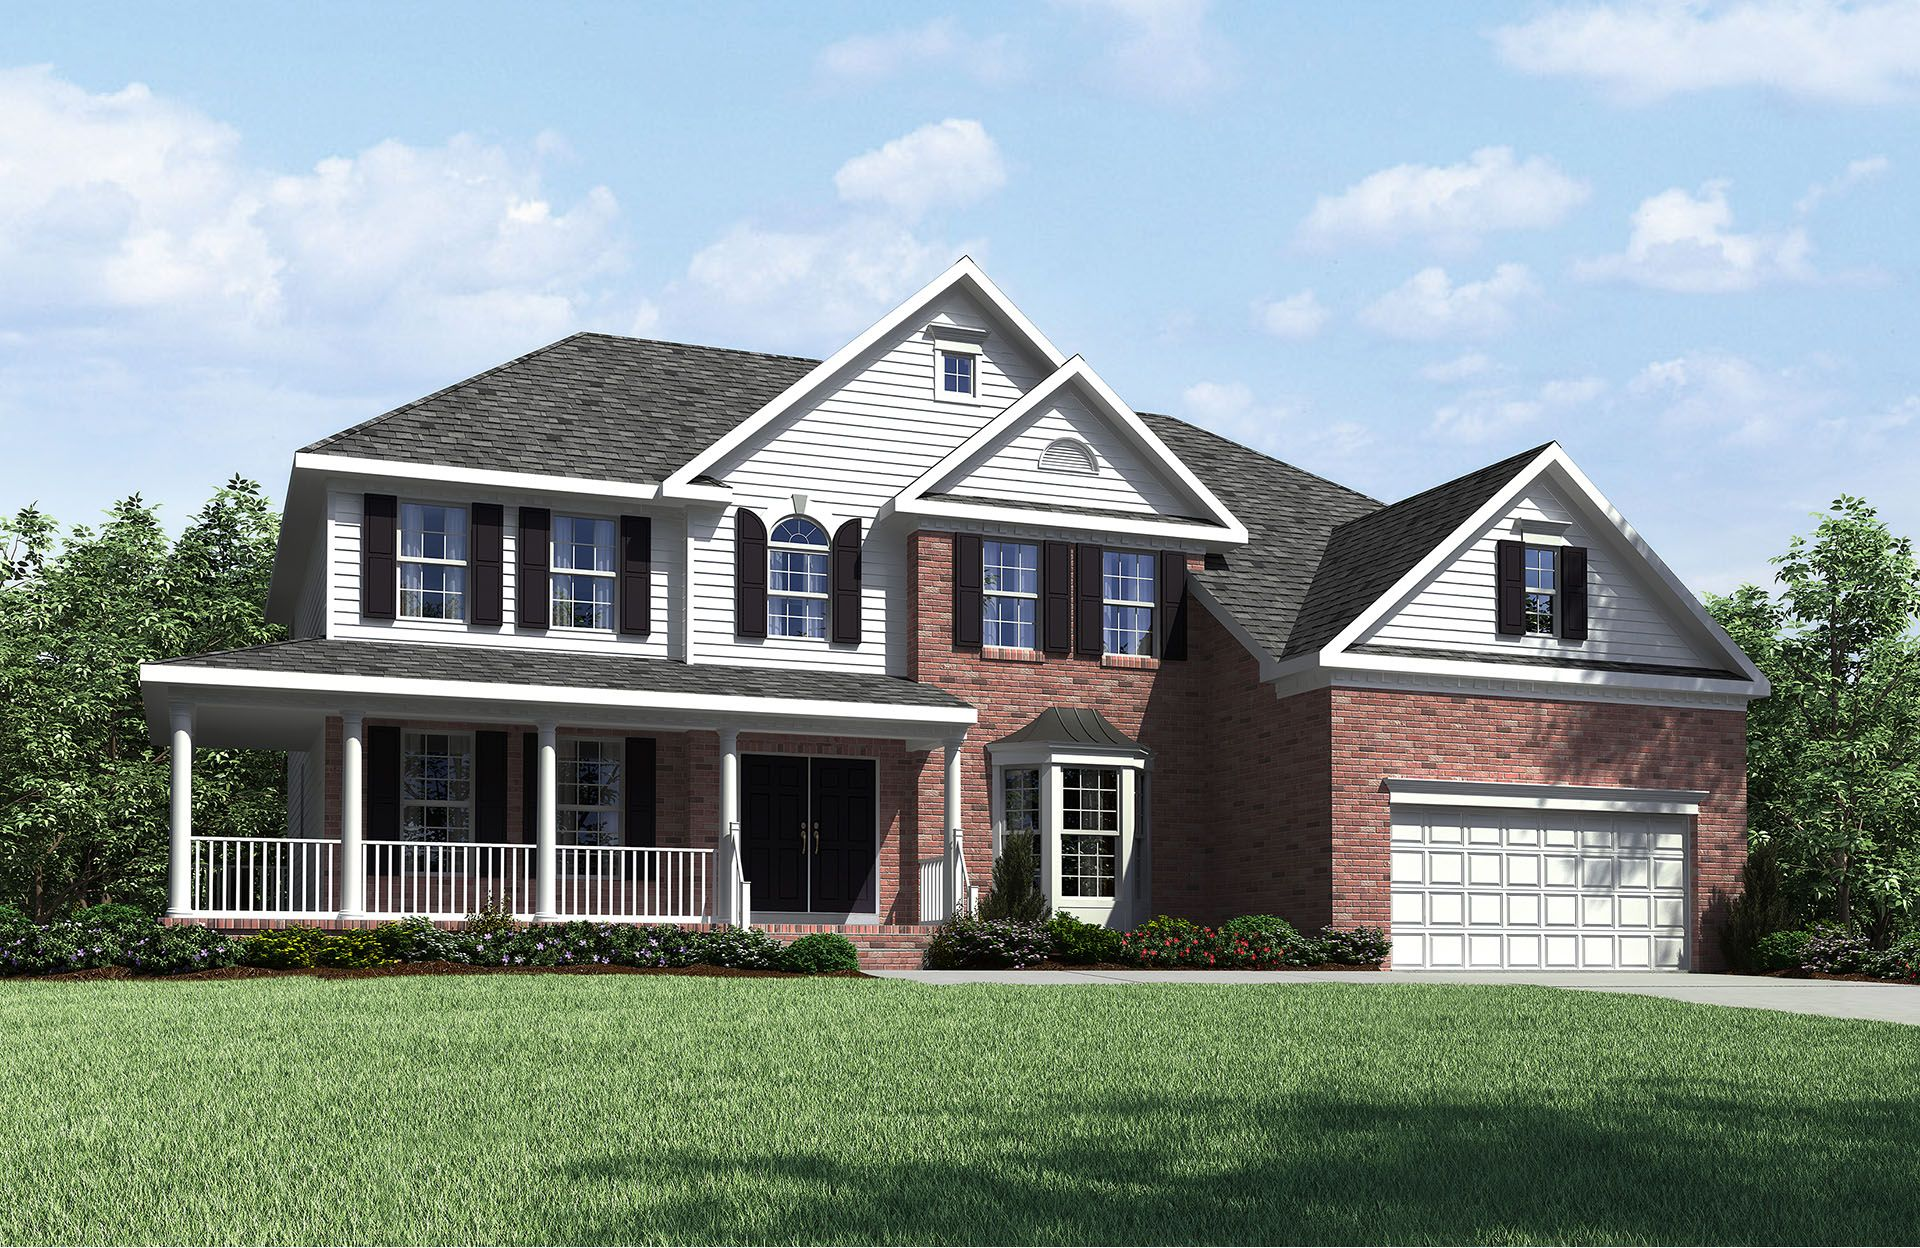 Single Family for Active at Lochridge - The Estates - Langdon 208 Falling Stone Drive Holly Springs, North Carolina 27540 United States